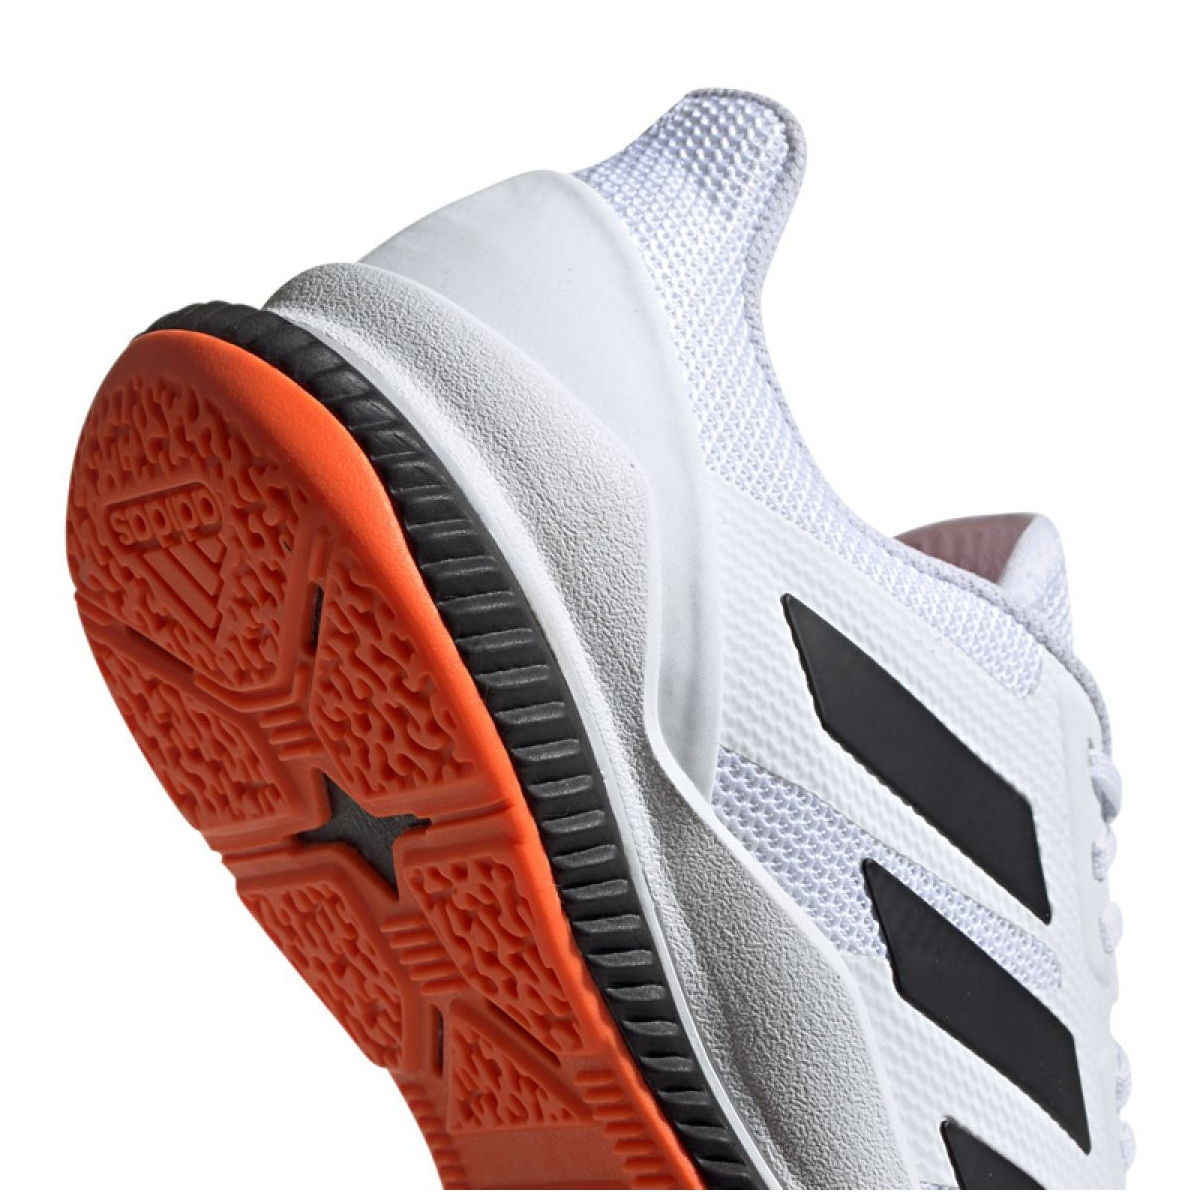 Adidas Stabil Bounce M EF0206 chaussures